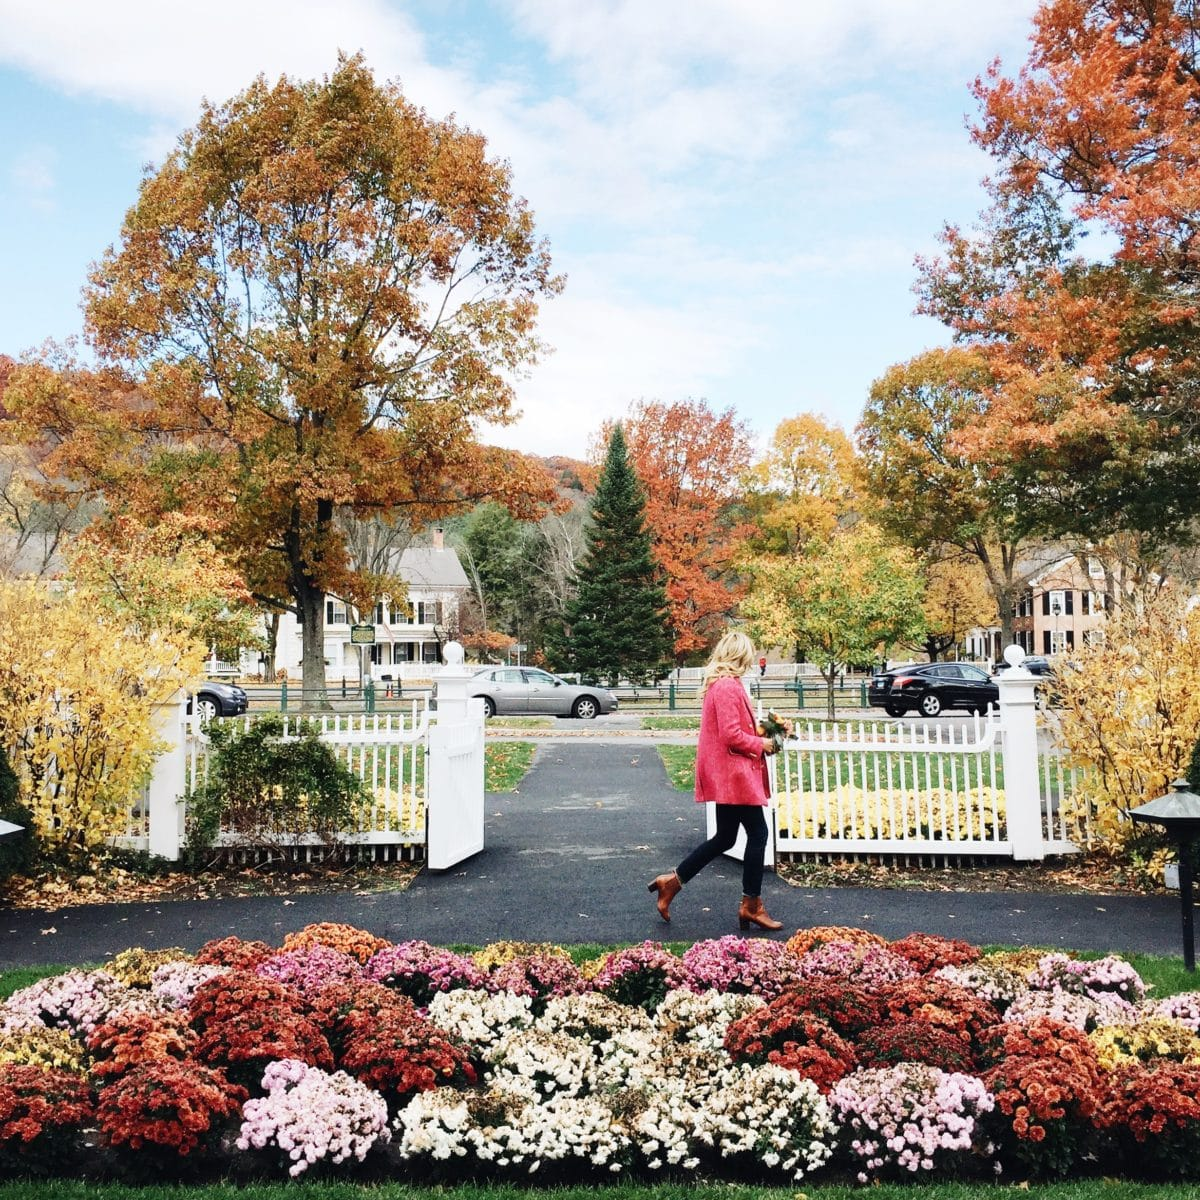 Best Fall Getaways According to Your Favorite Travel Bloggers